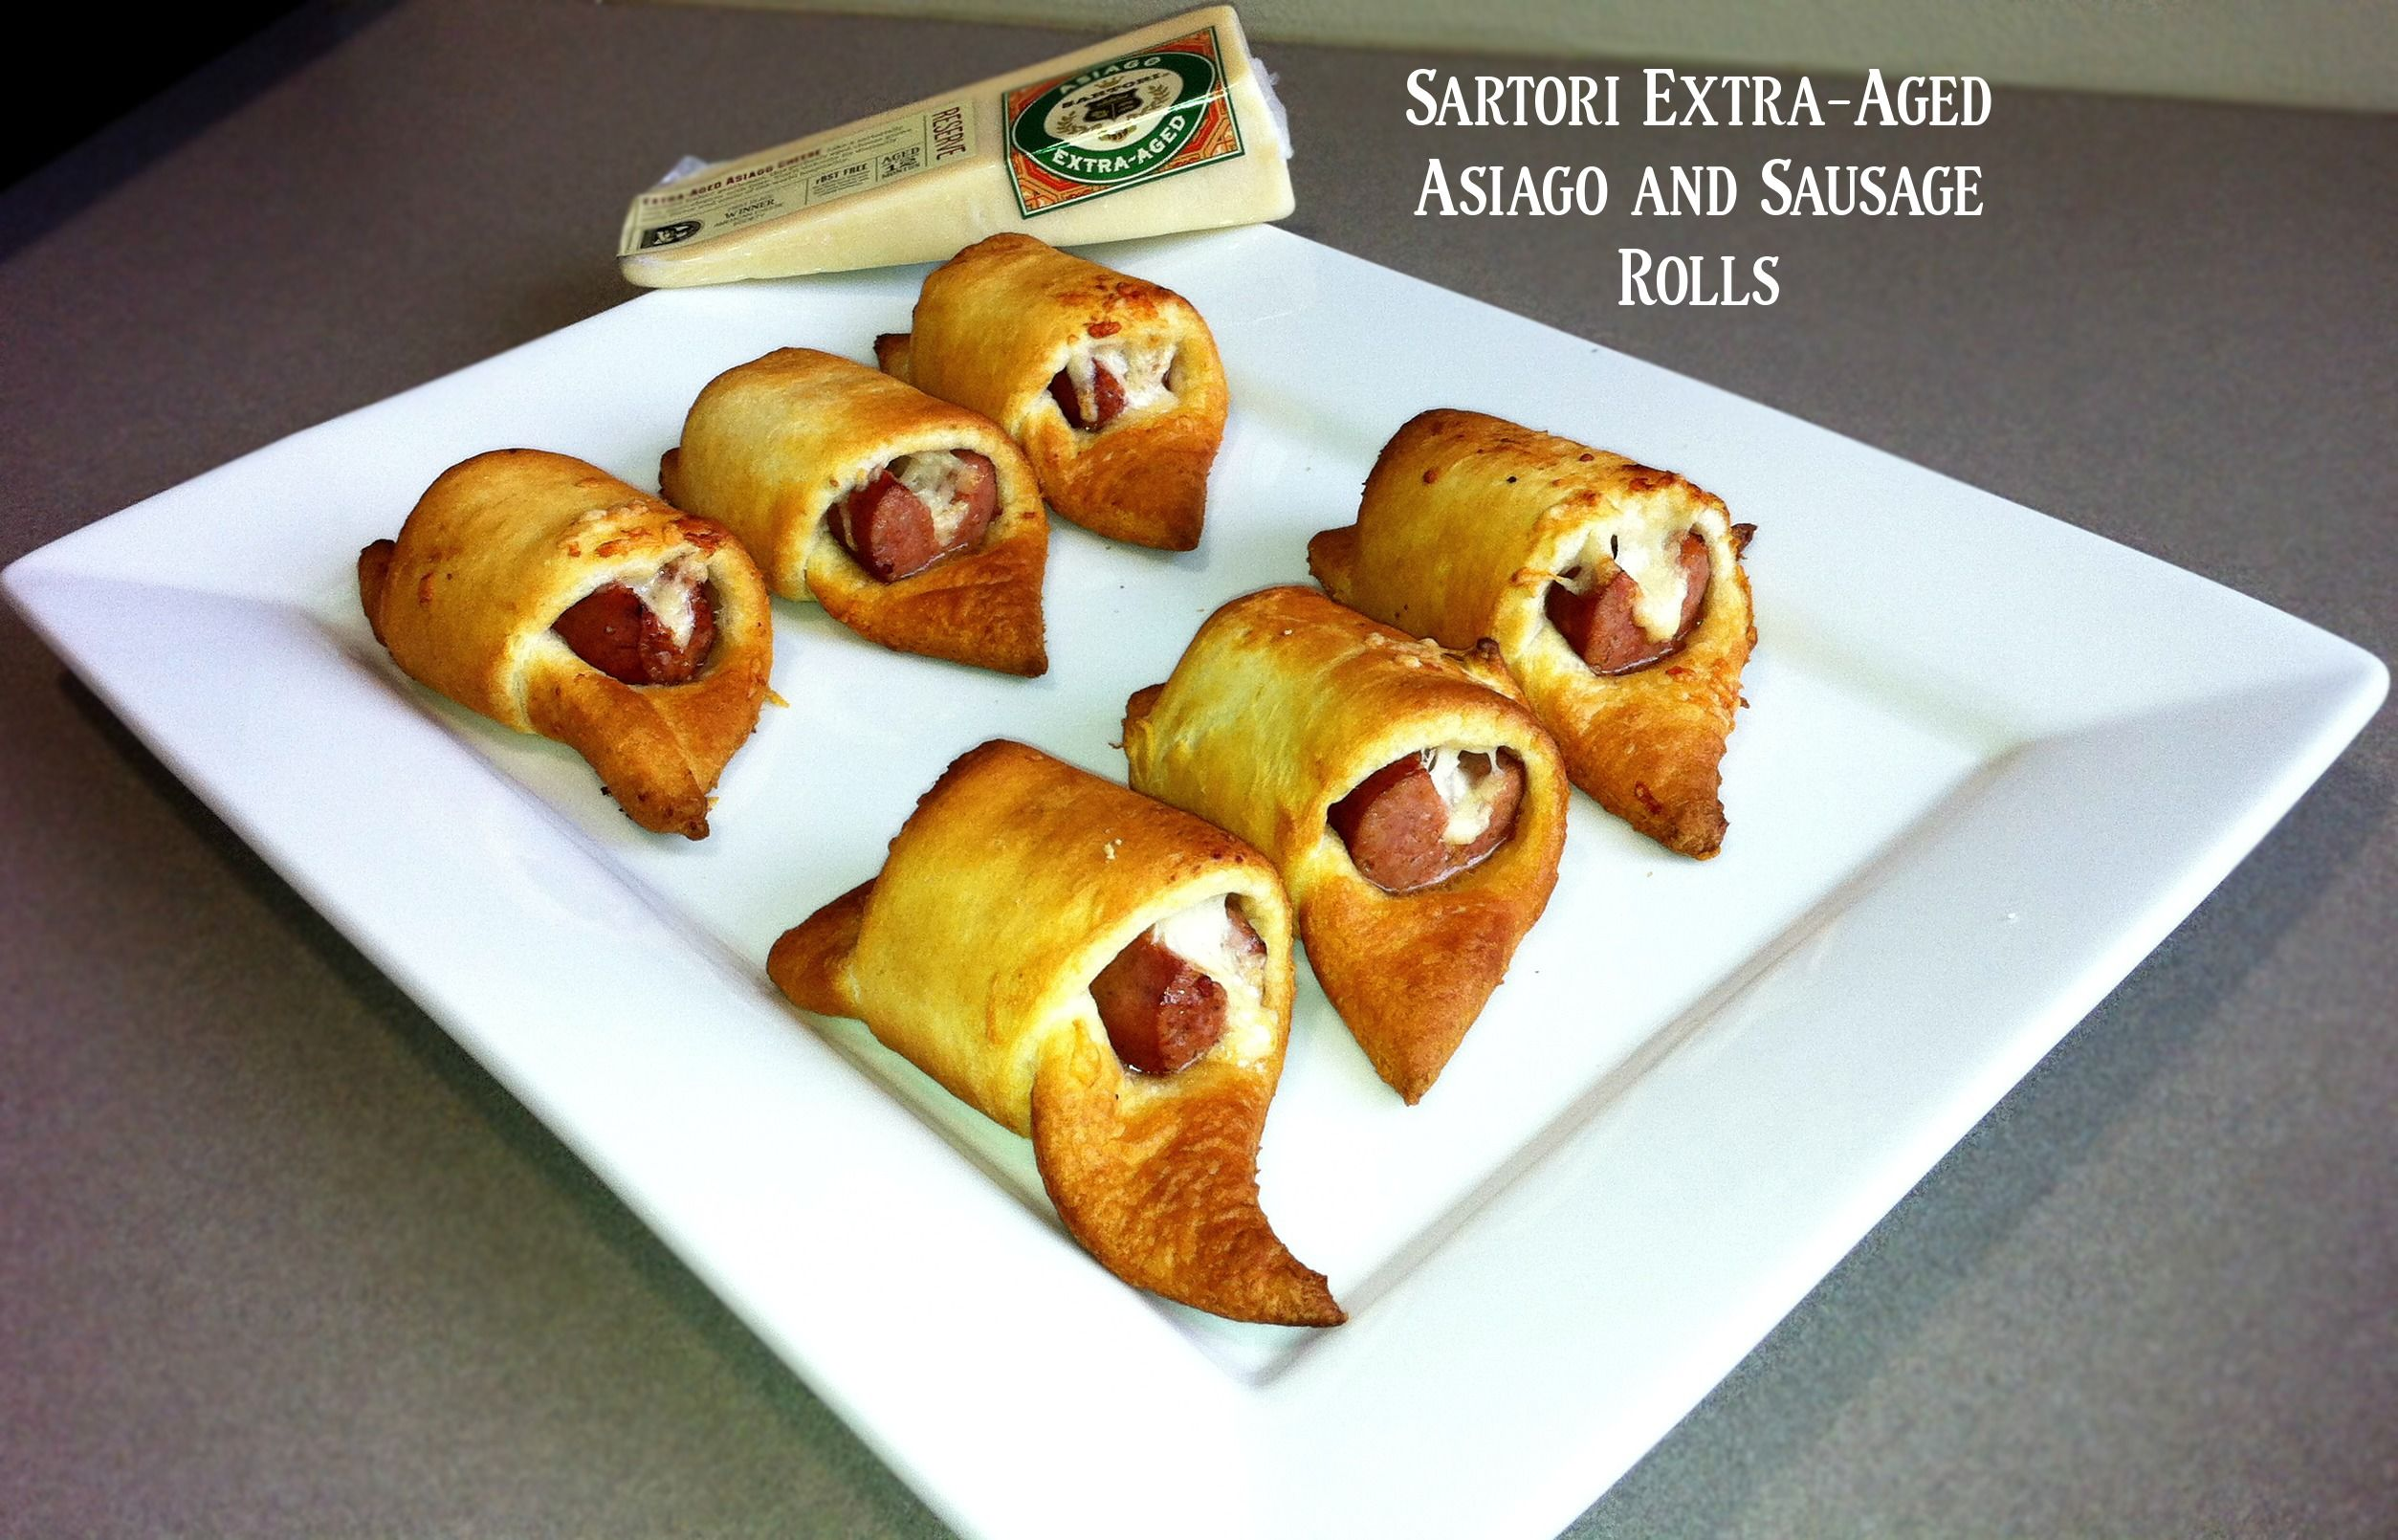 Sartori Extra-Aged Asiago cheese and Sausage Rolls are the perfect bite-size snacks! http://www.facebook.com/photo.php?fbid=405755722850245=pb.109174855841668.-2207520000.1364392725=3